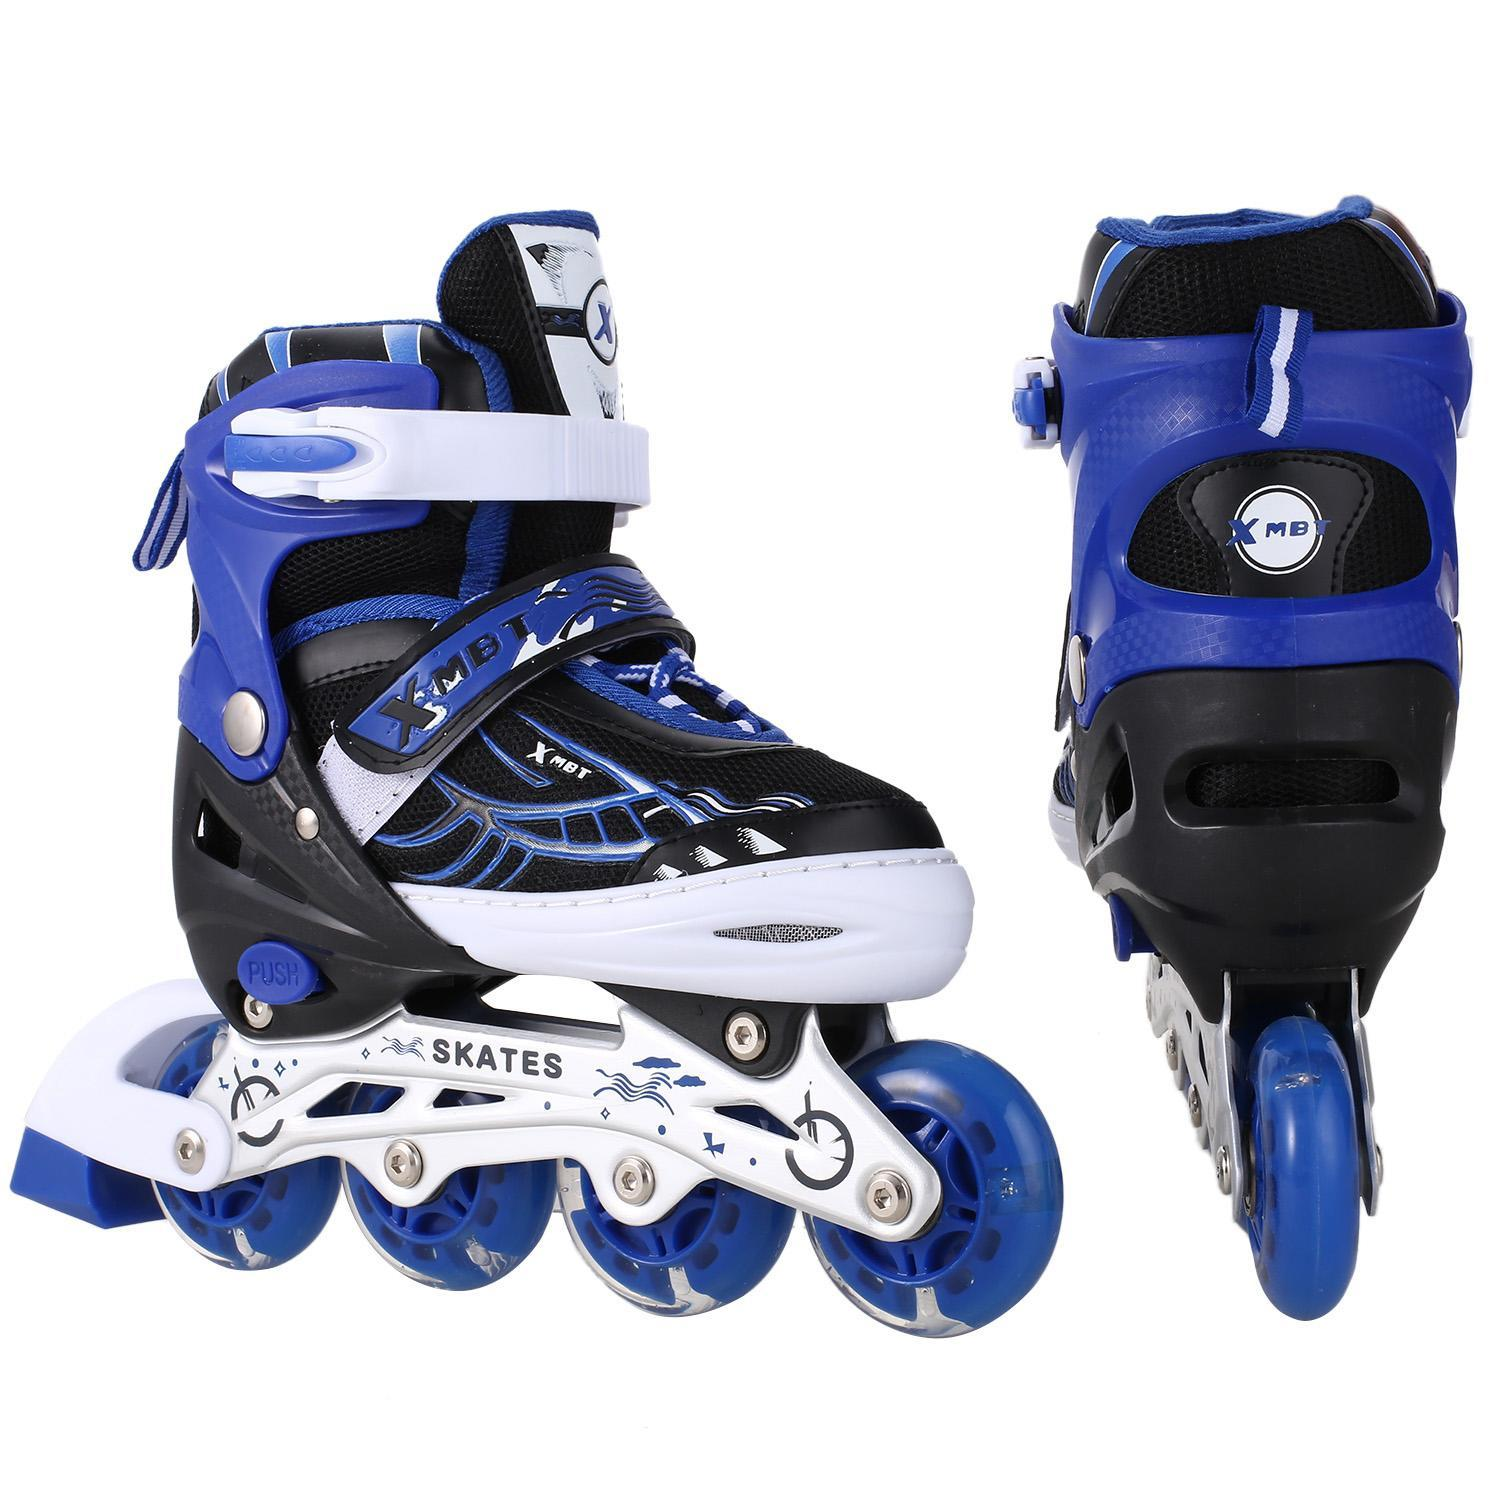 On sale! Kids Inline Skates with Light up Wheels, Stylish Rollerblades for Beginners boys and girls